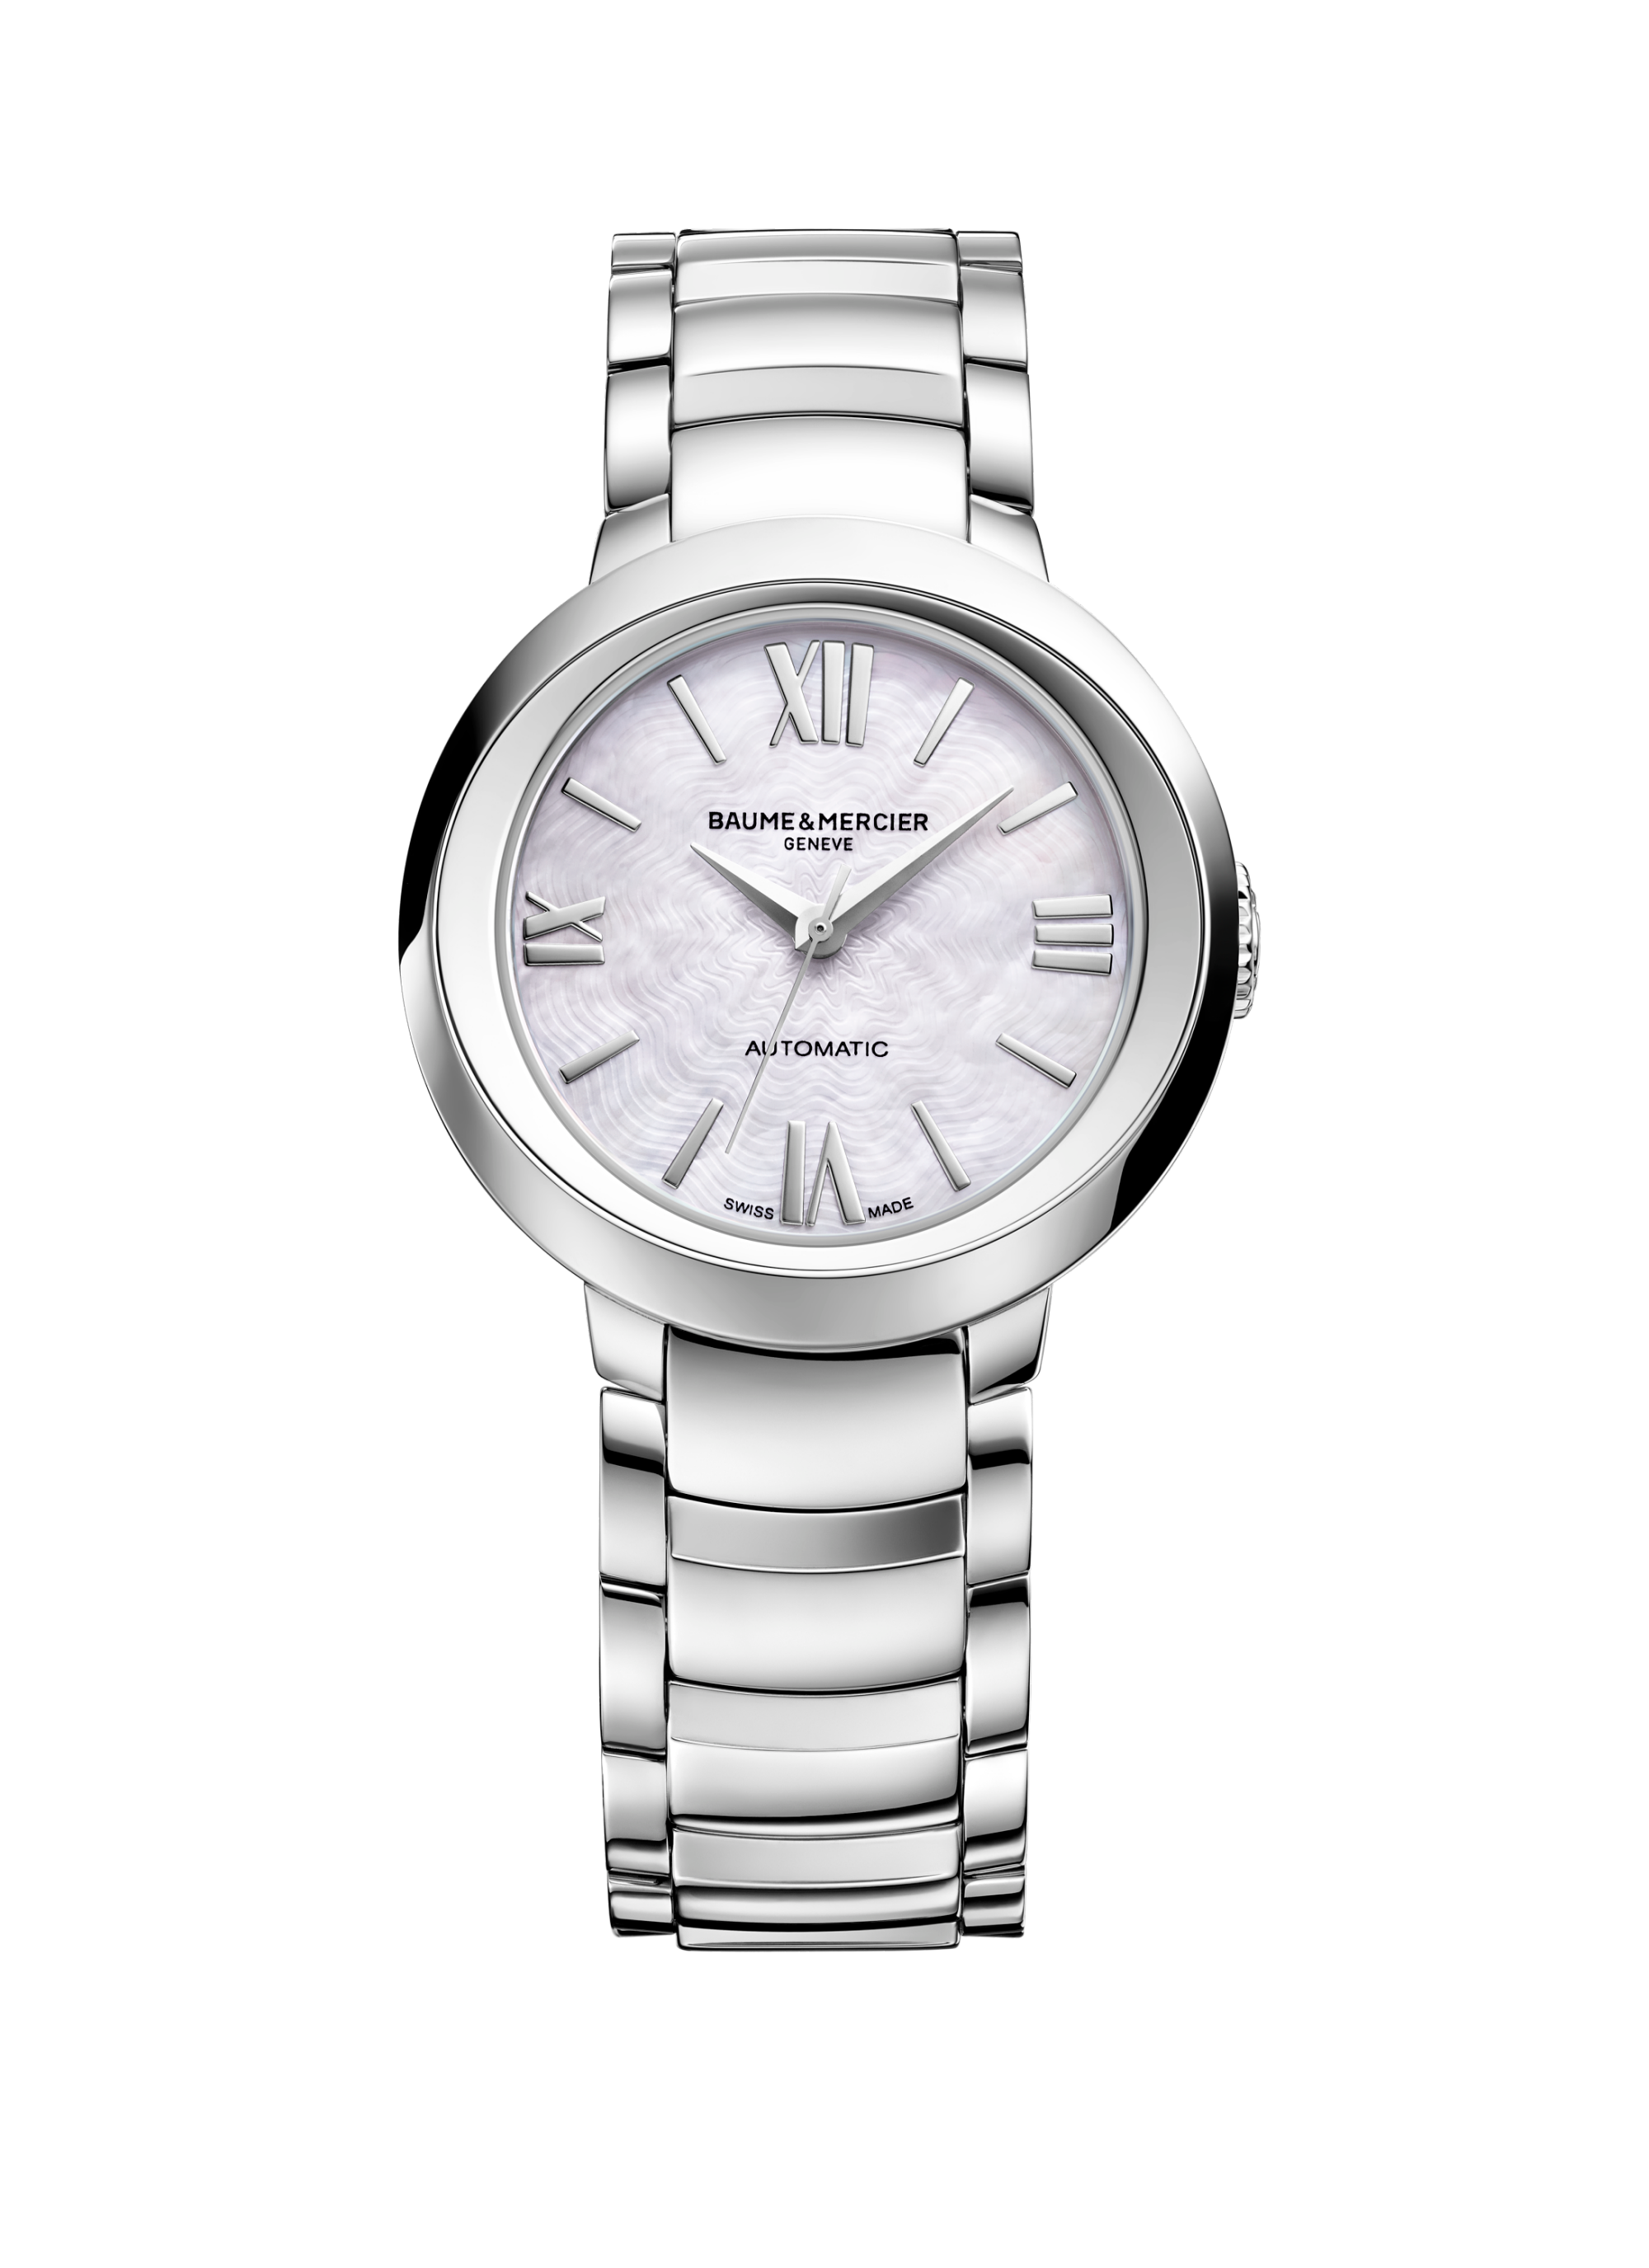 Promesse 10182 Watch for ladies | Check Prices on Baume & Mercier Front -